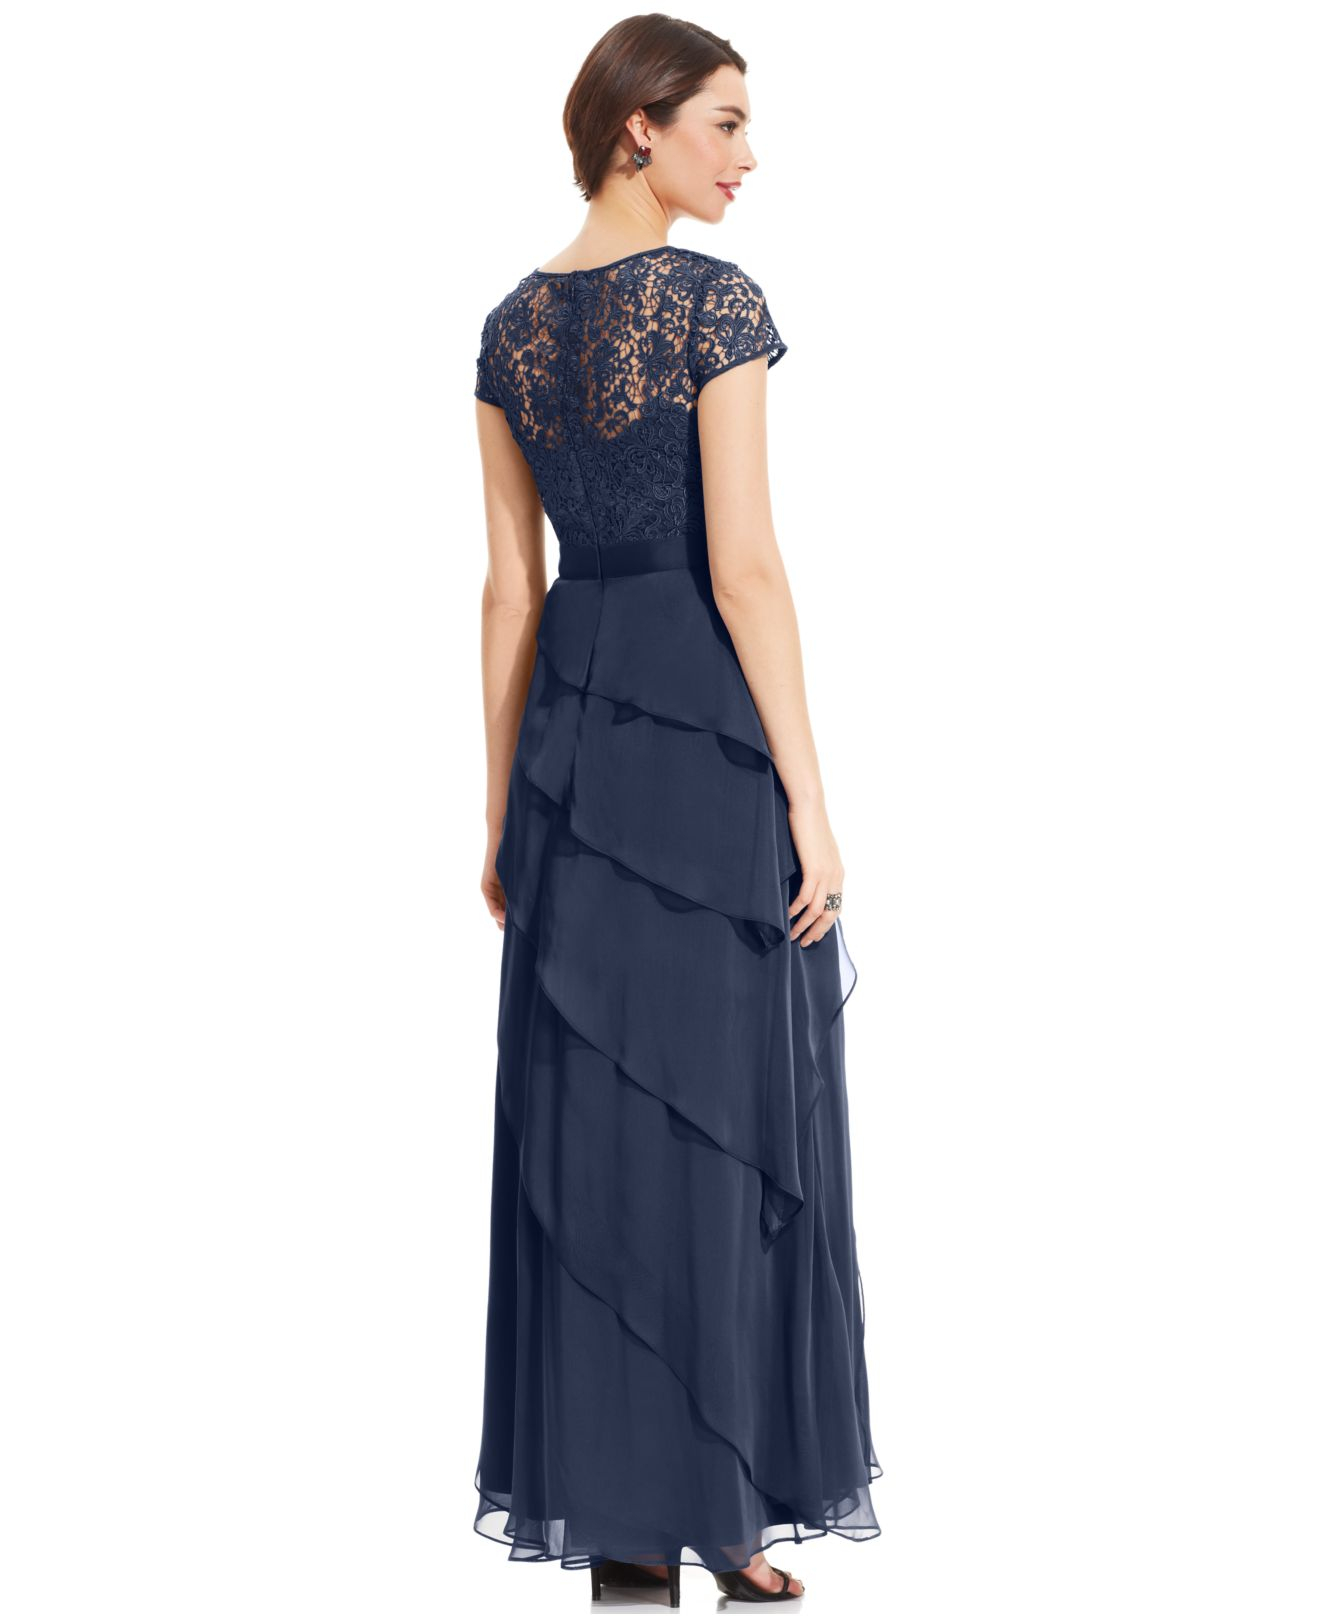 Lyst - Adrianna Papell Petite Cap-sleeve Lace Tiered Gown in Purple